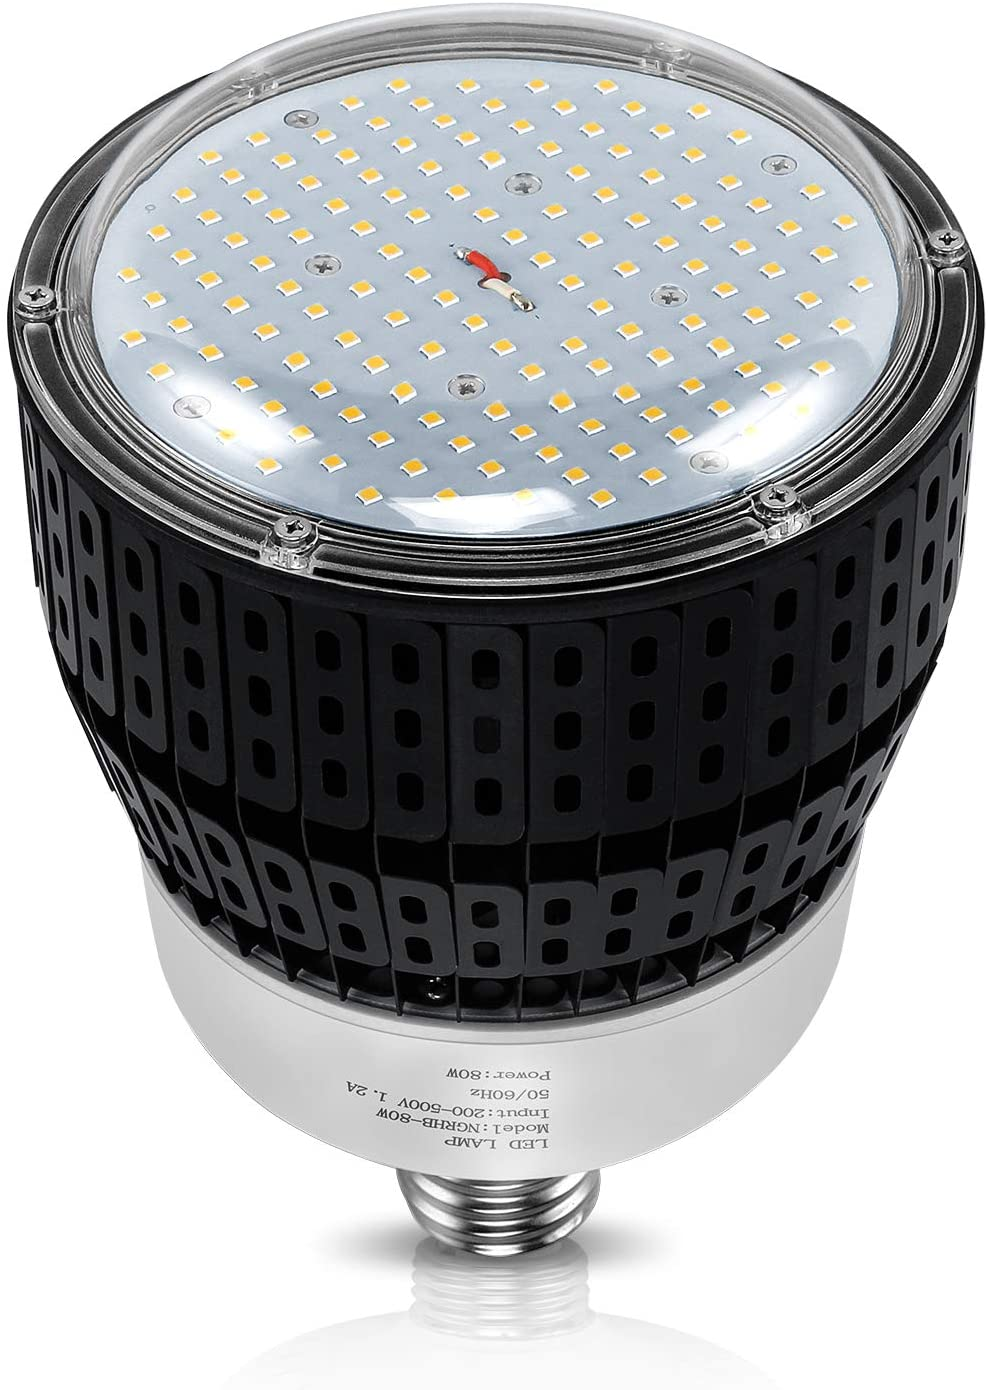 120W LED High Bay Retrofit 480V